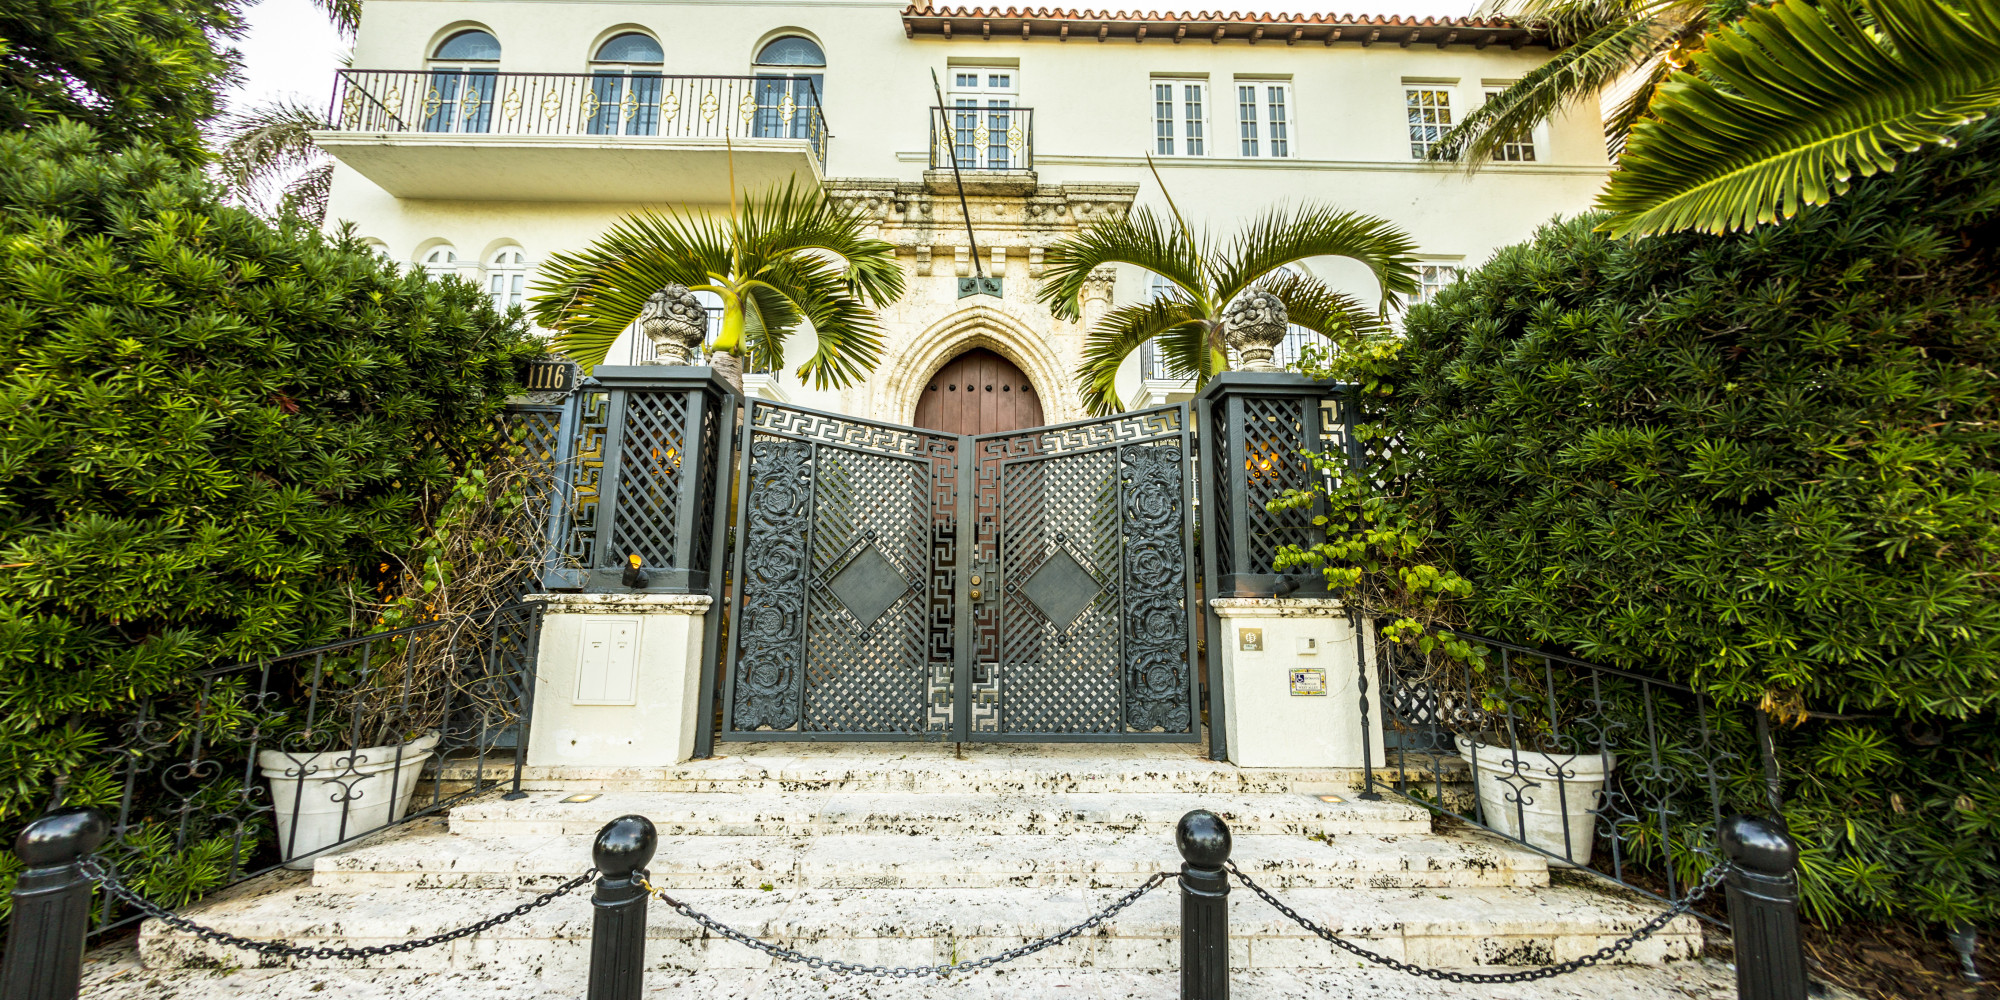 Versace mansion 20 amazing facts about gianni versace 39 s casa casuarina heading to auction - Calculating square footage of a house pict ...